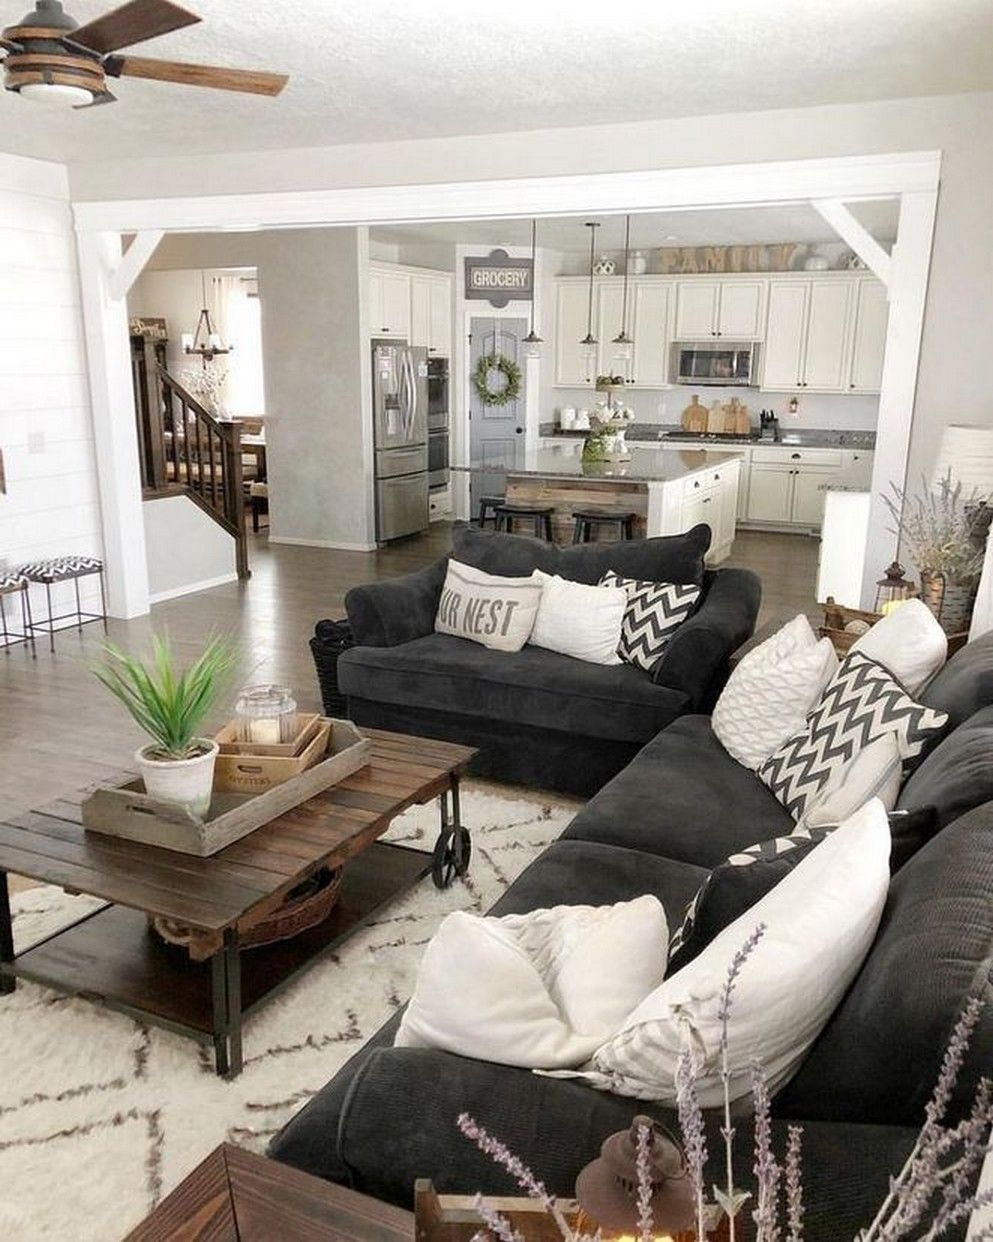 39 Rustic Farmhouse Living Room Design